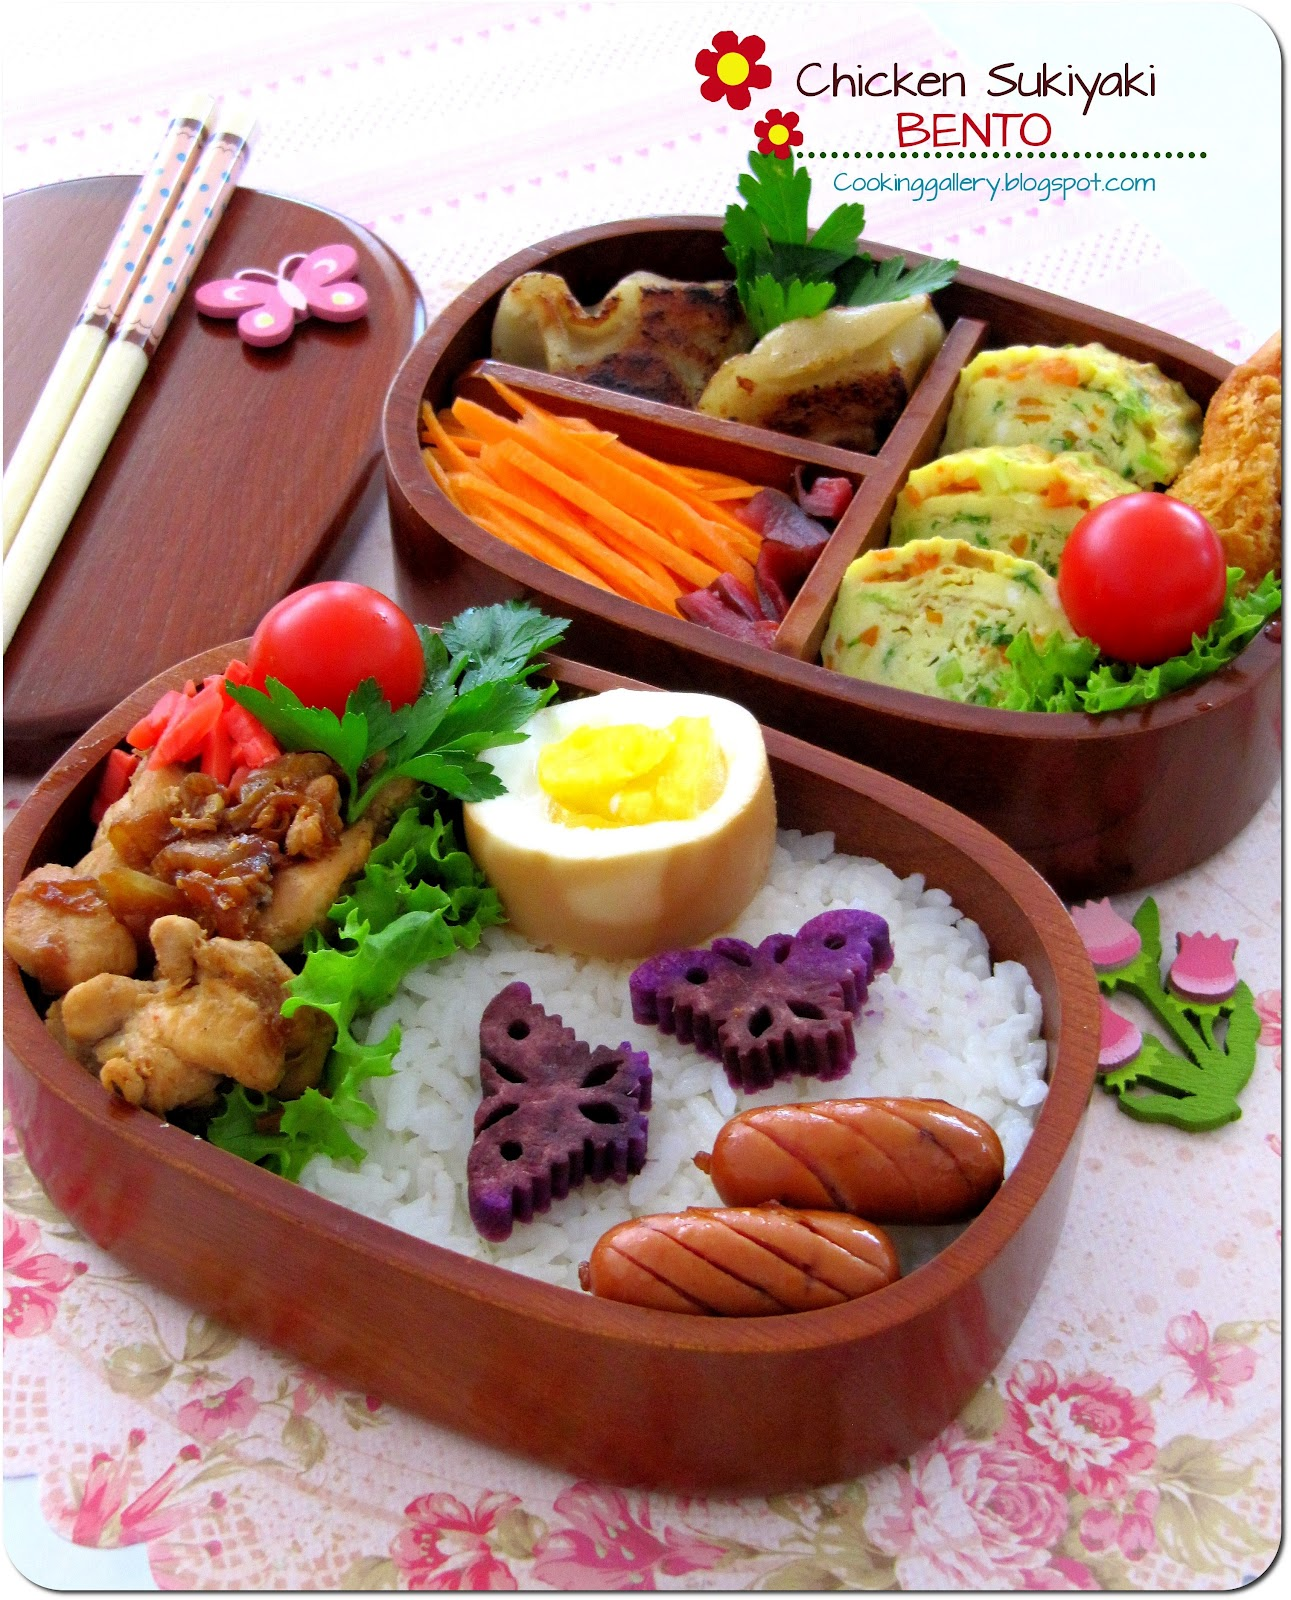 Chicken Sukiyaki Bento | Cooking Gallery